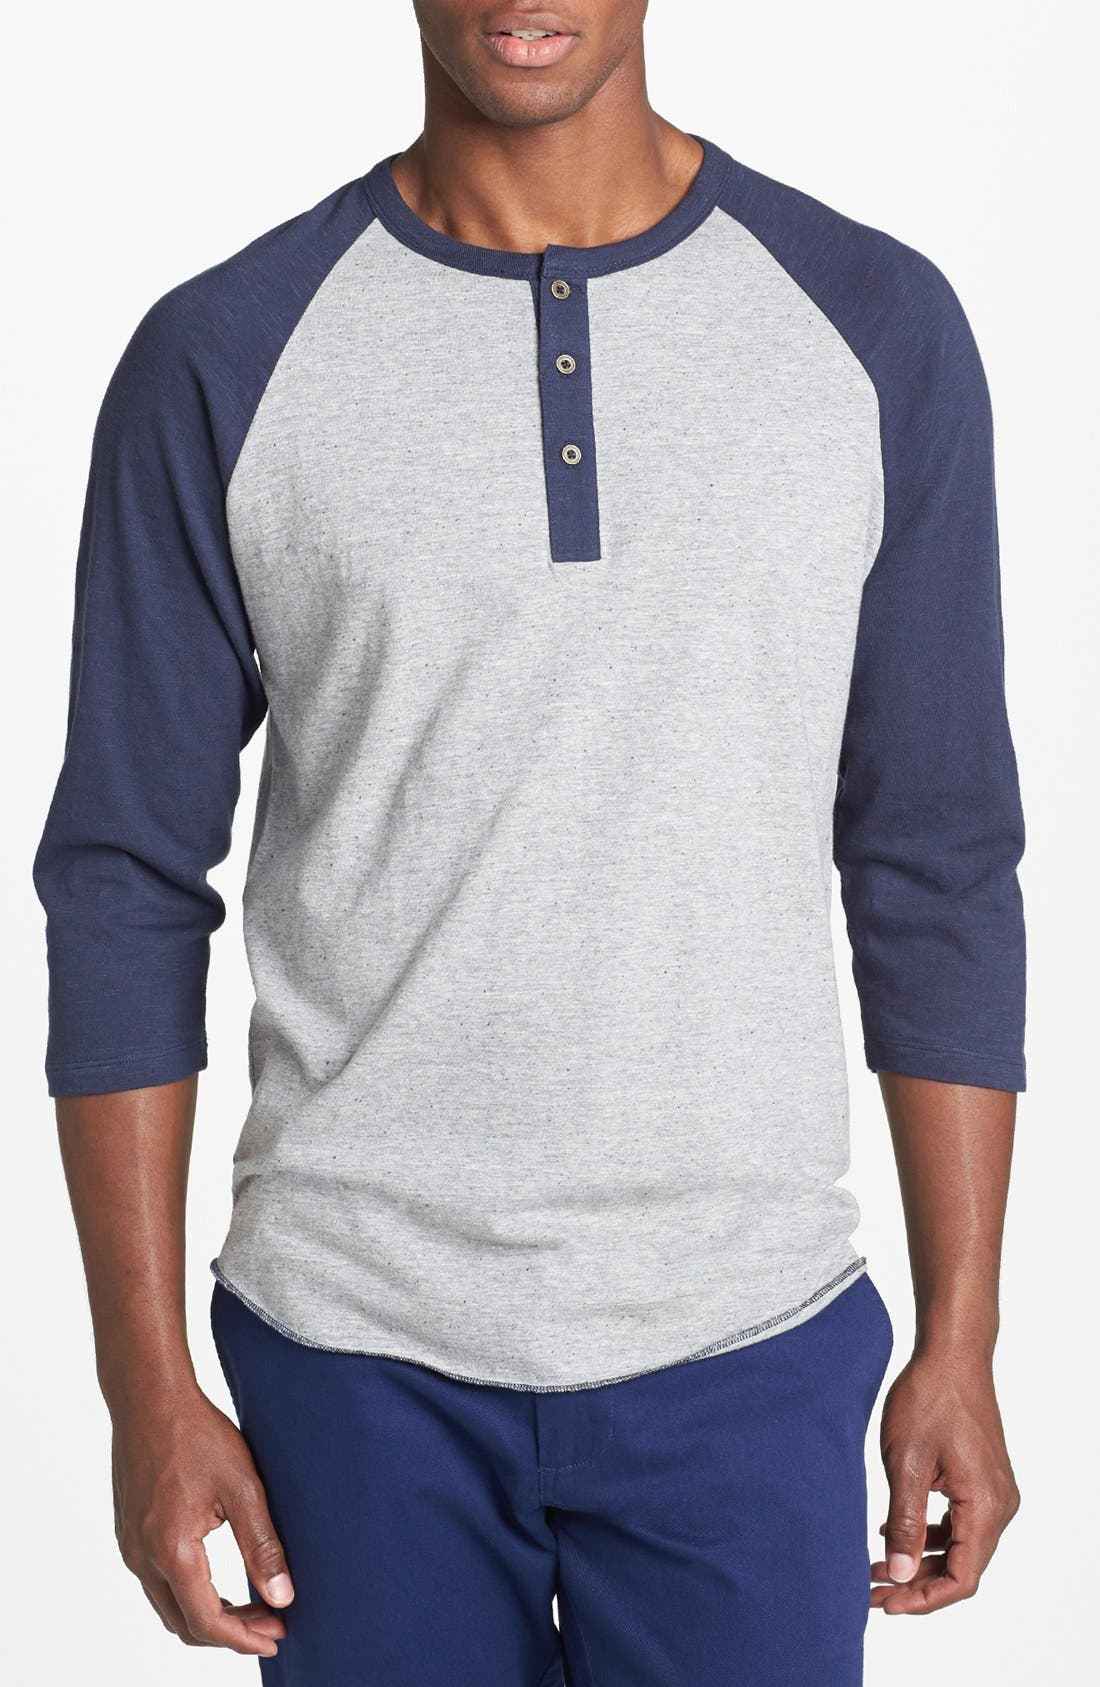 Enjoy all-day comfort with a professional twist in custom Henley shirts. These styles are made for work, play and everything in between. Men's and ladies' shirts from top workwear and team jersey brands can be customized with your company logo, team name or any of our free design templates.